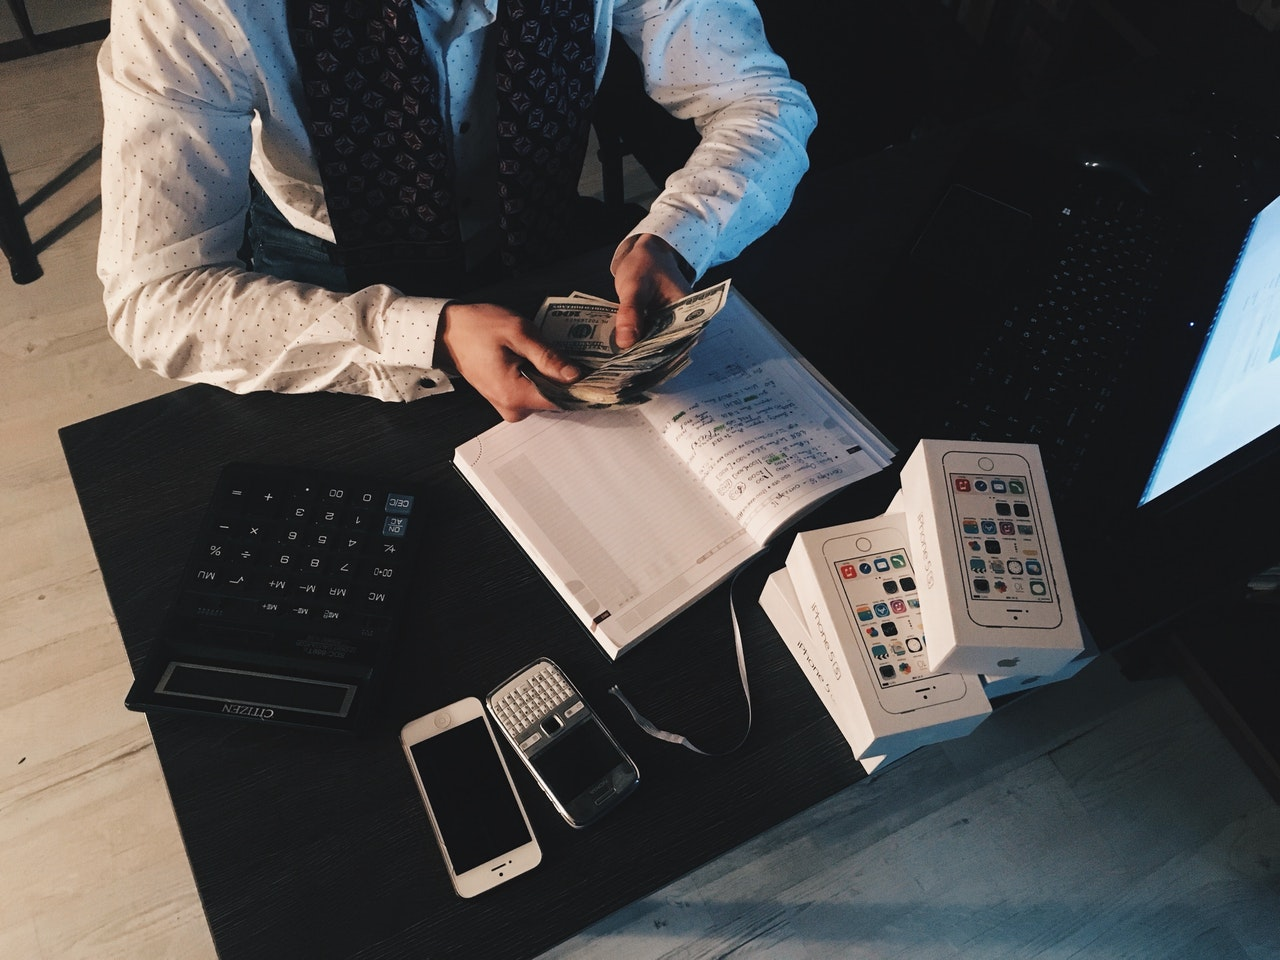 Understand the difference between accrual and cash accounting and how to choose what's best for your small business